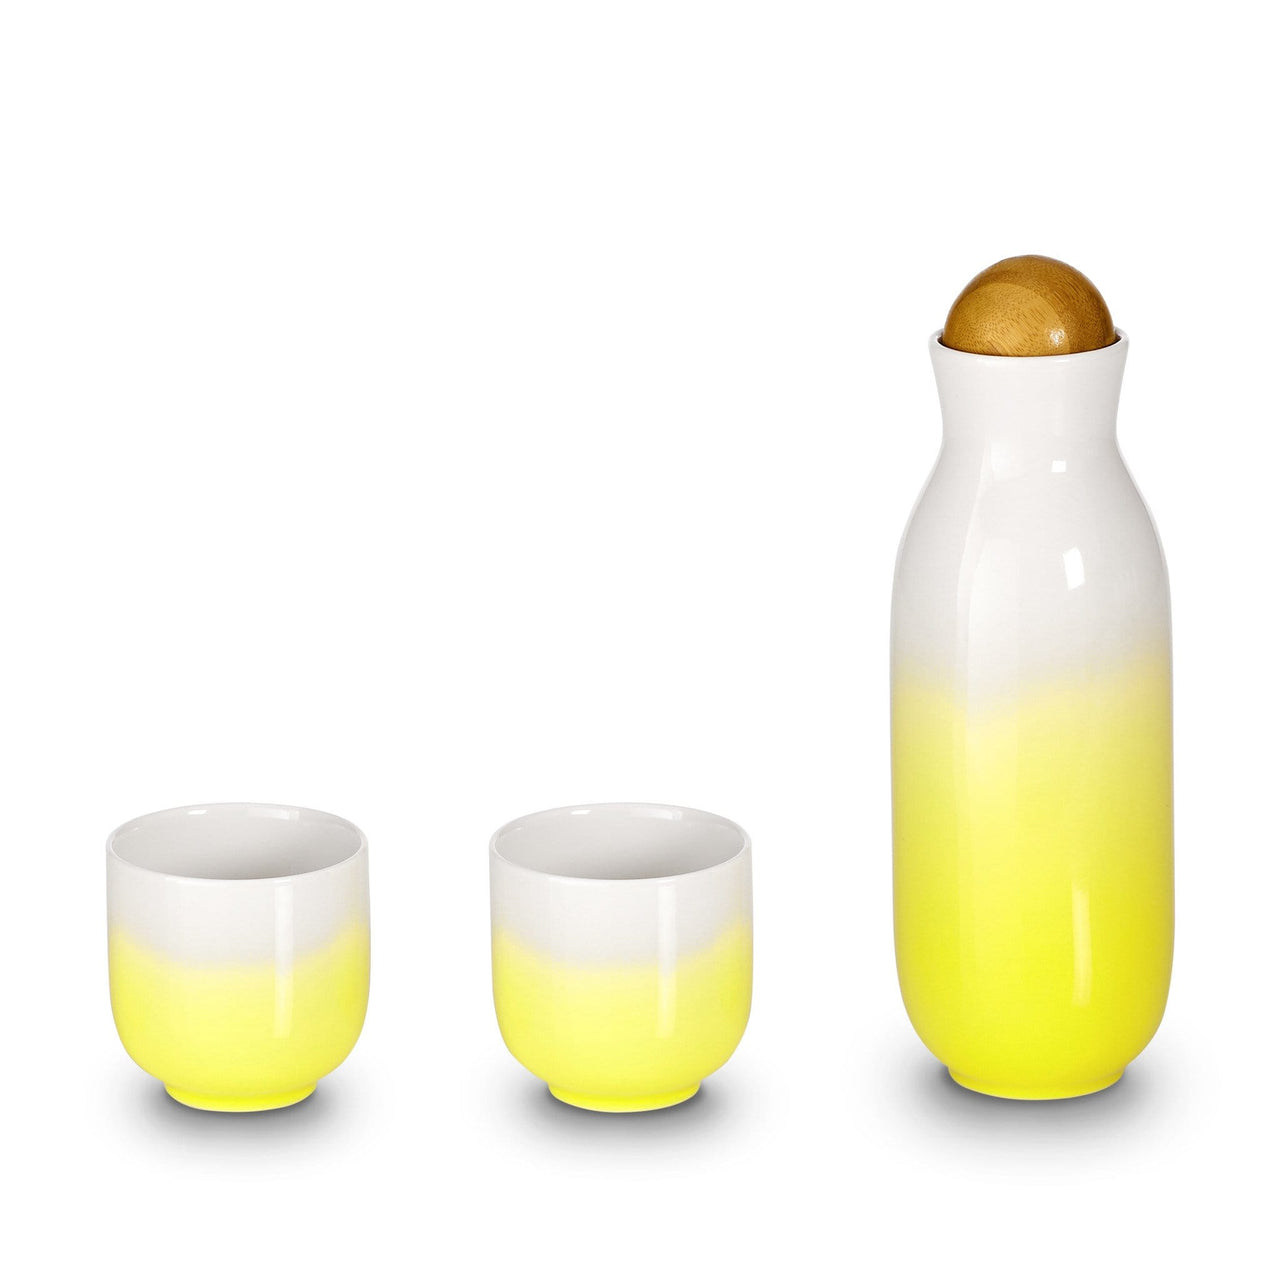 Acera Liven Coffee & Tea Accessories Lemon  Ombre Bloom Carafe Tea Cups Set